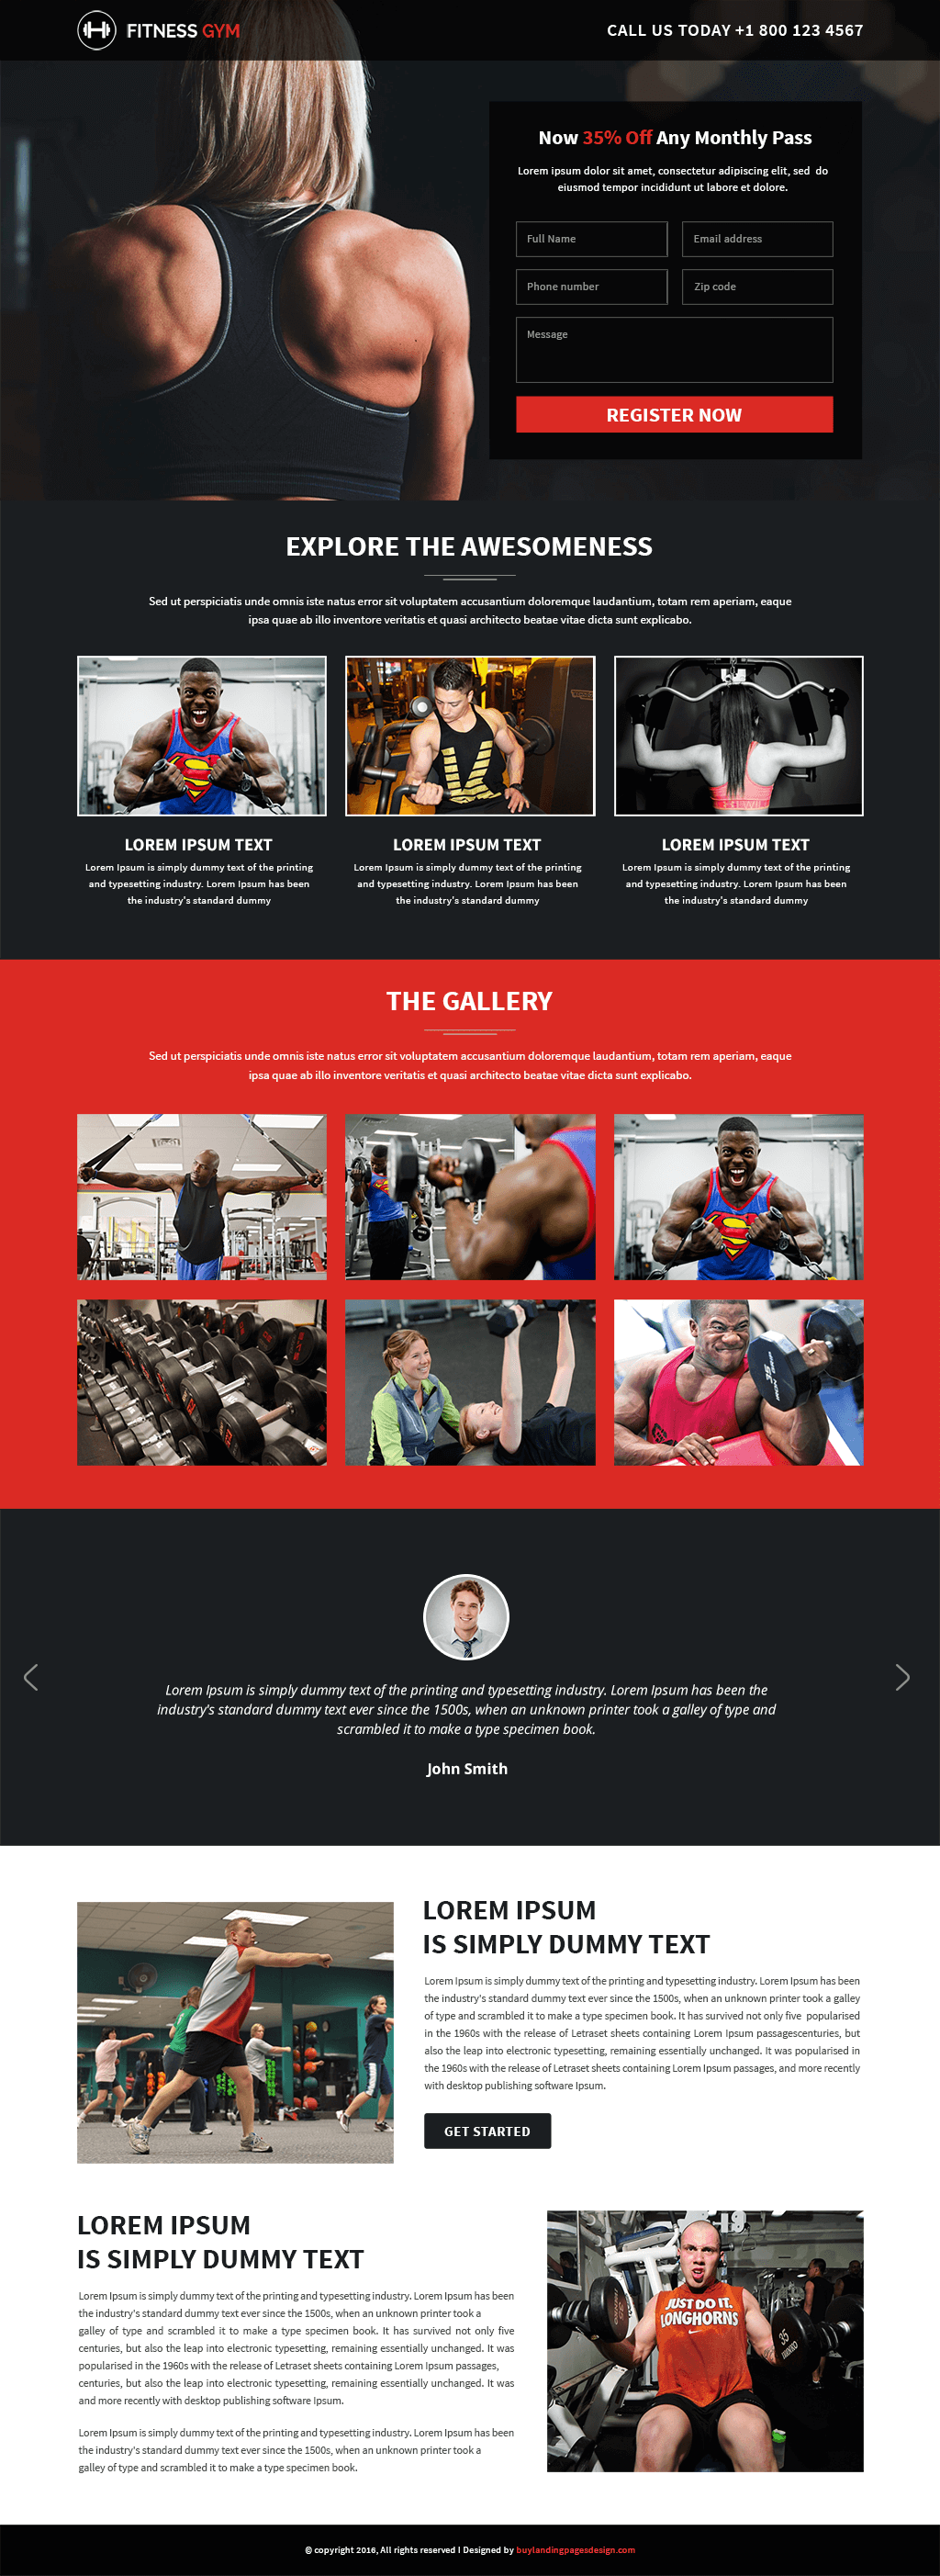 Responsive Fitness Gym Landing Pages Design Template